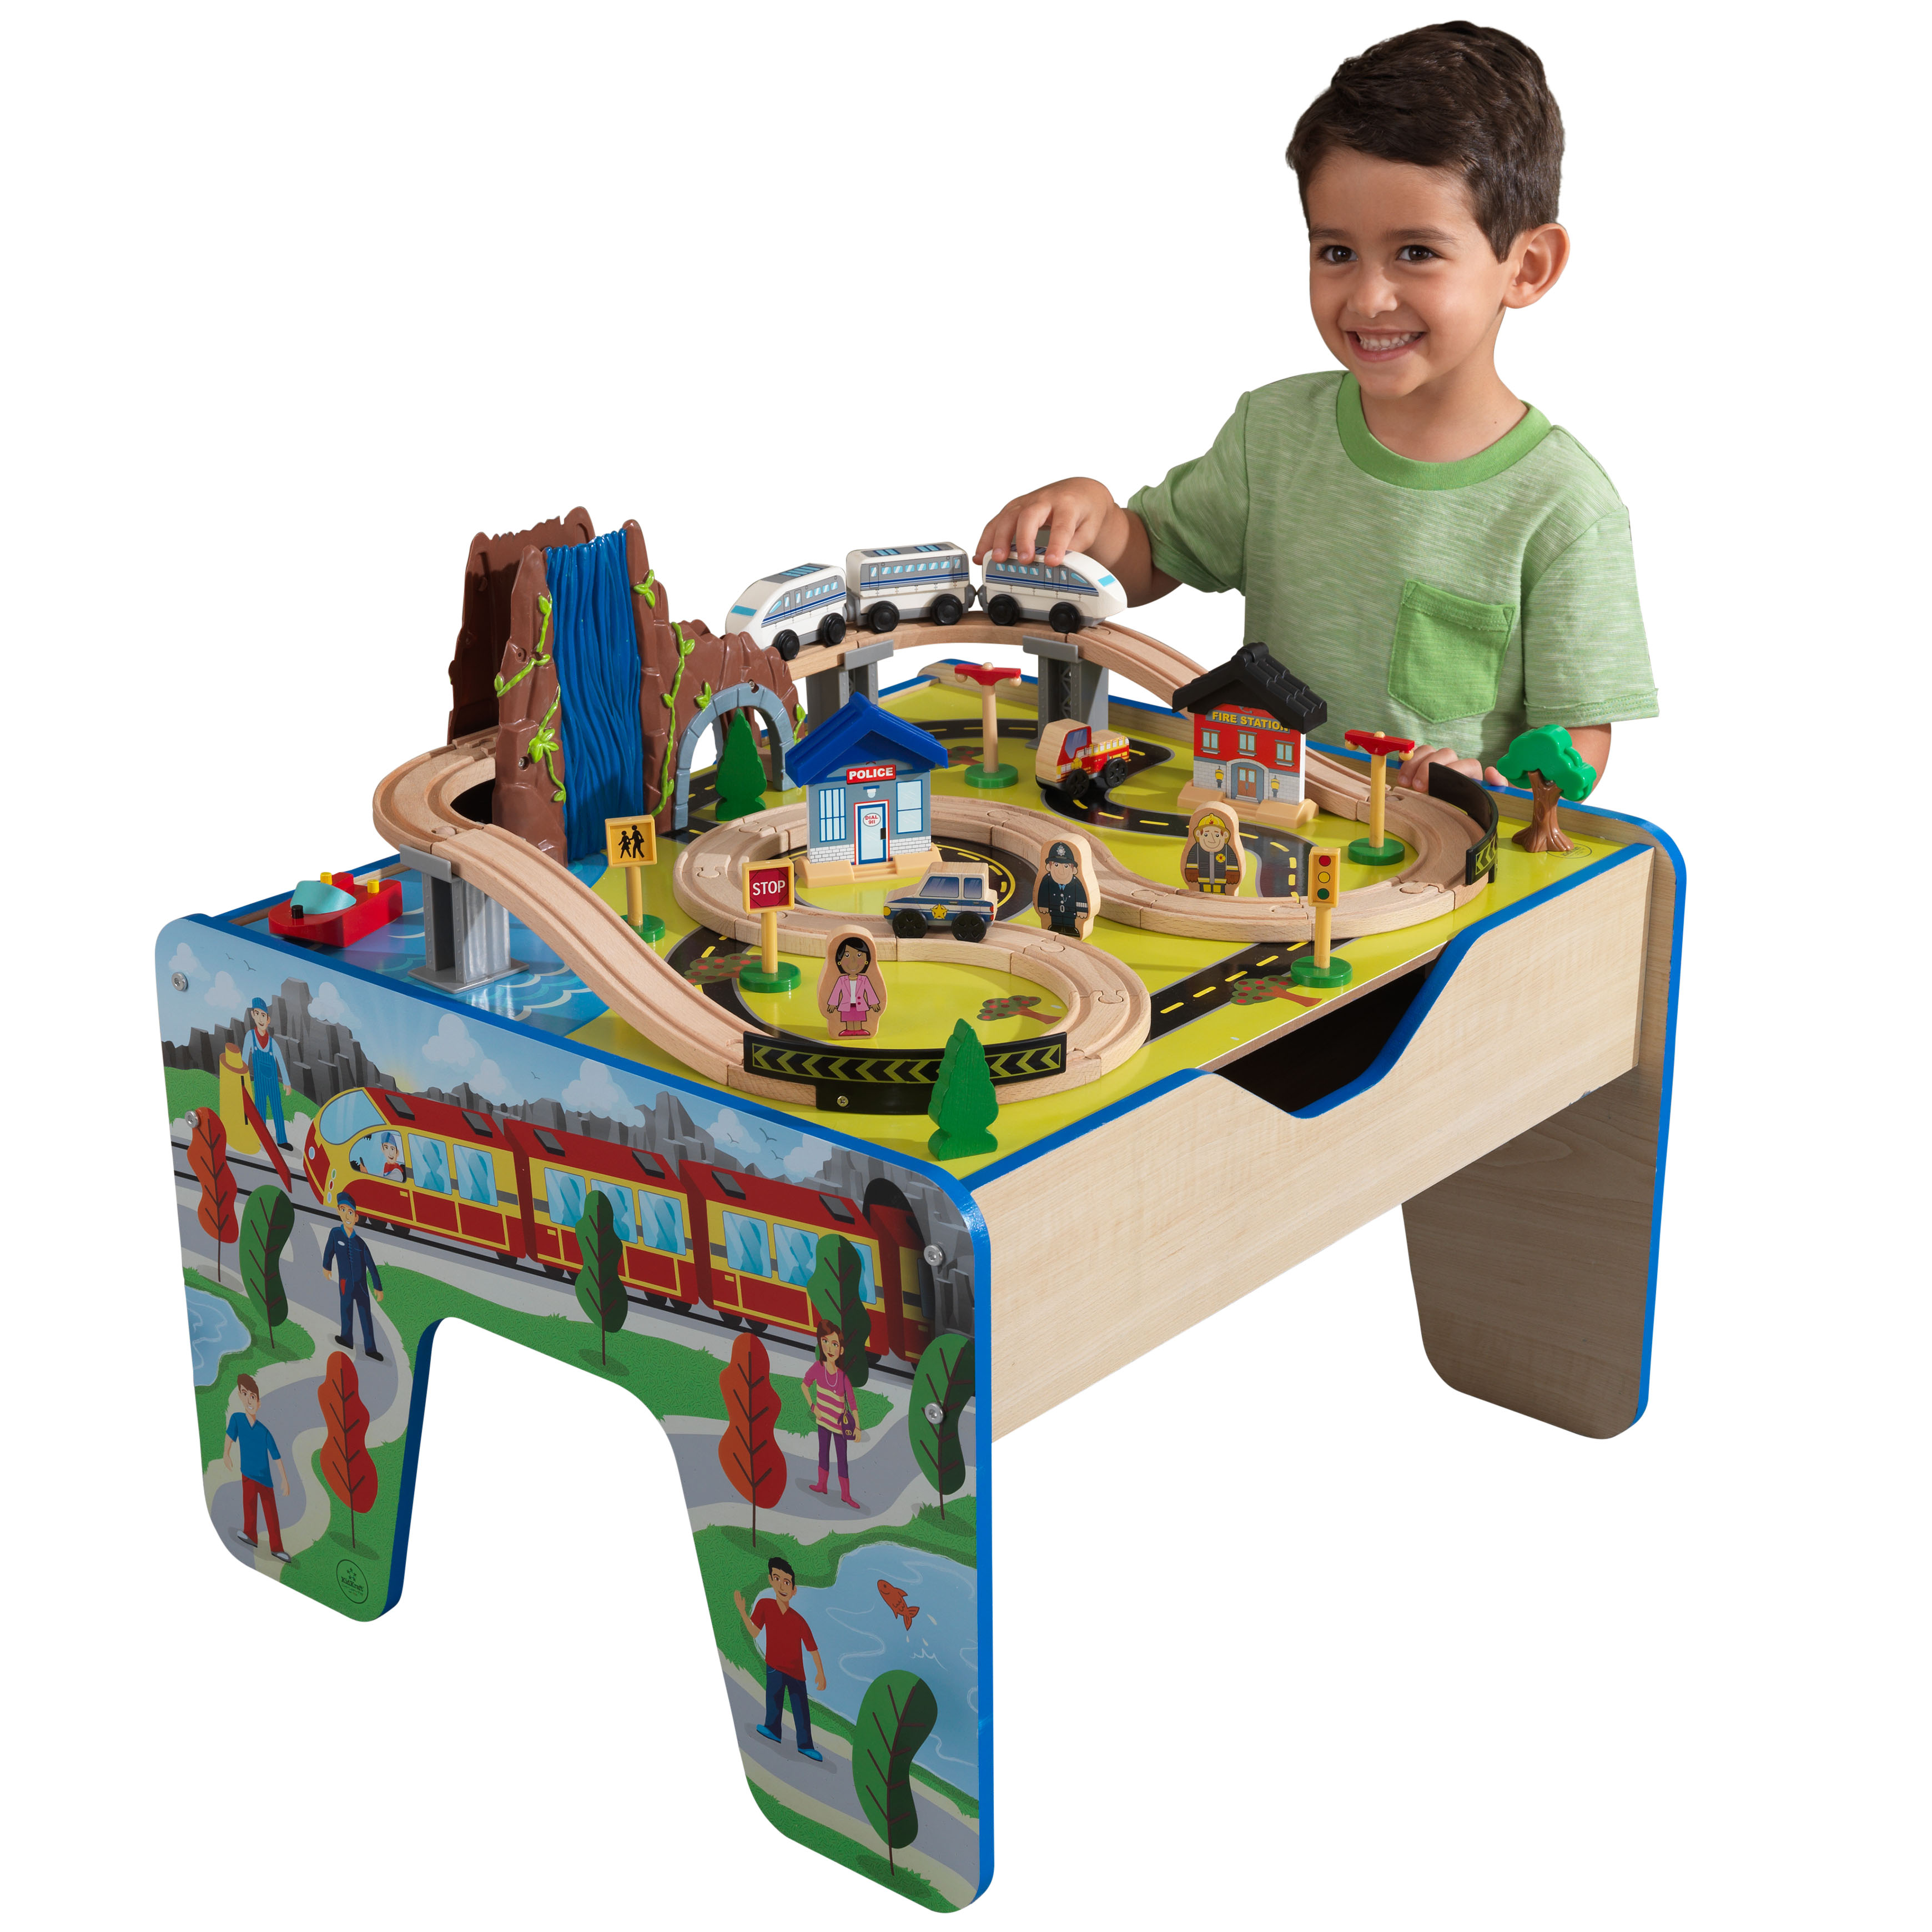 KidKraft Rapid Waterfall Train Set & Table with 48 accessories included